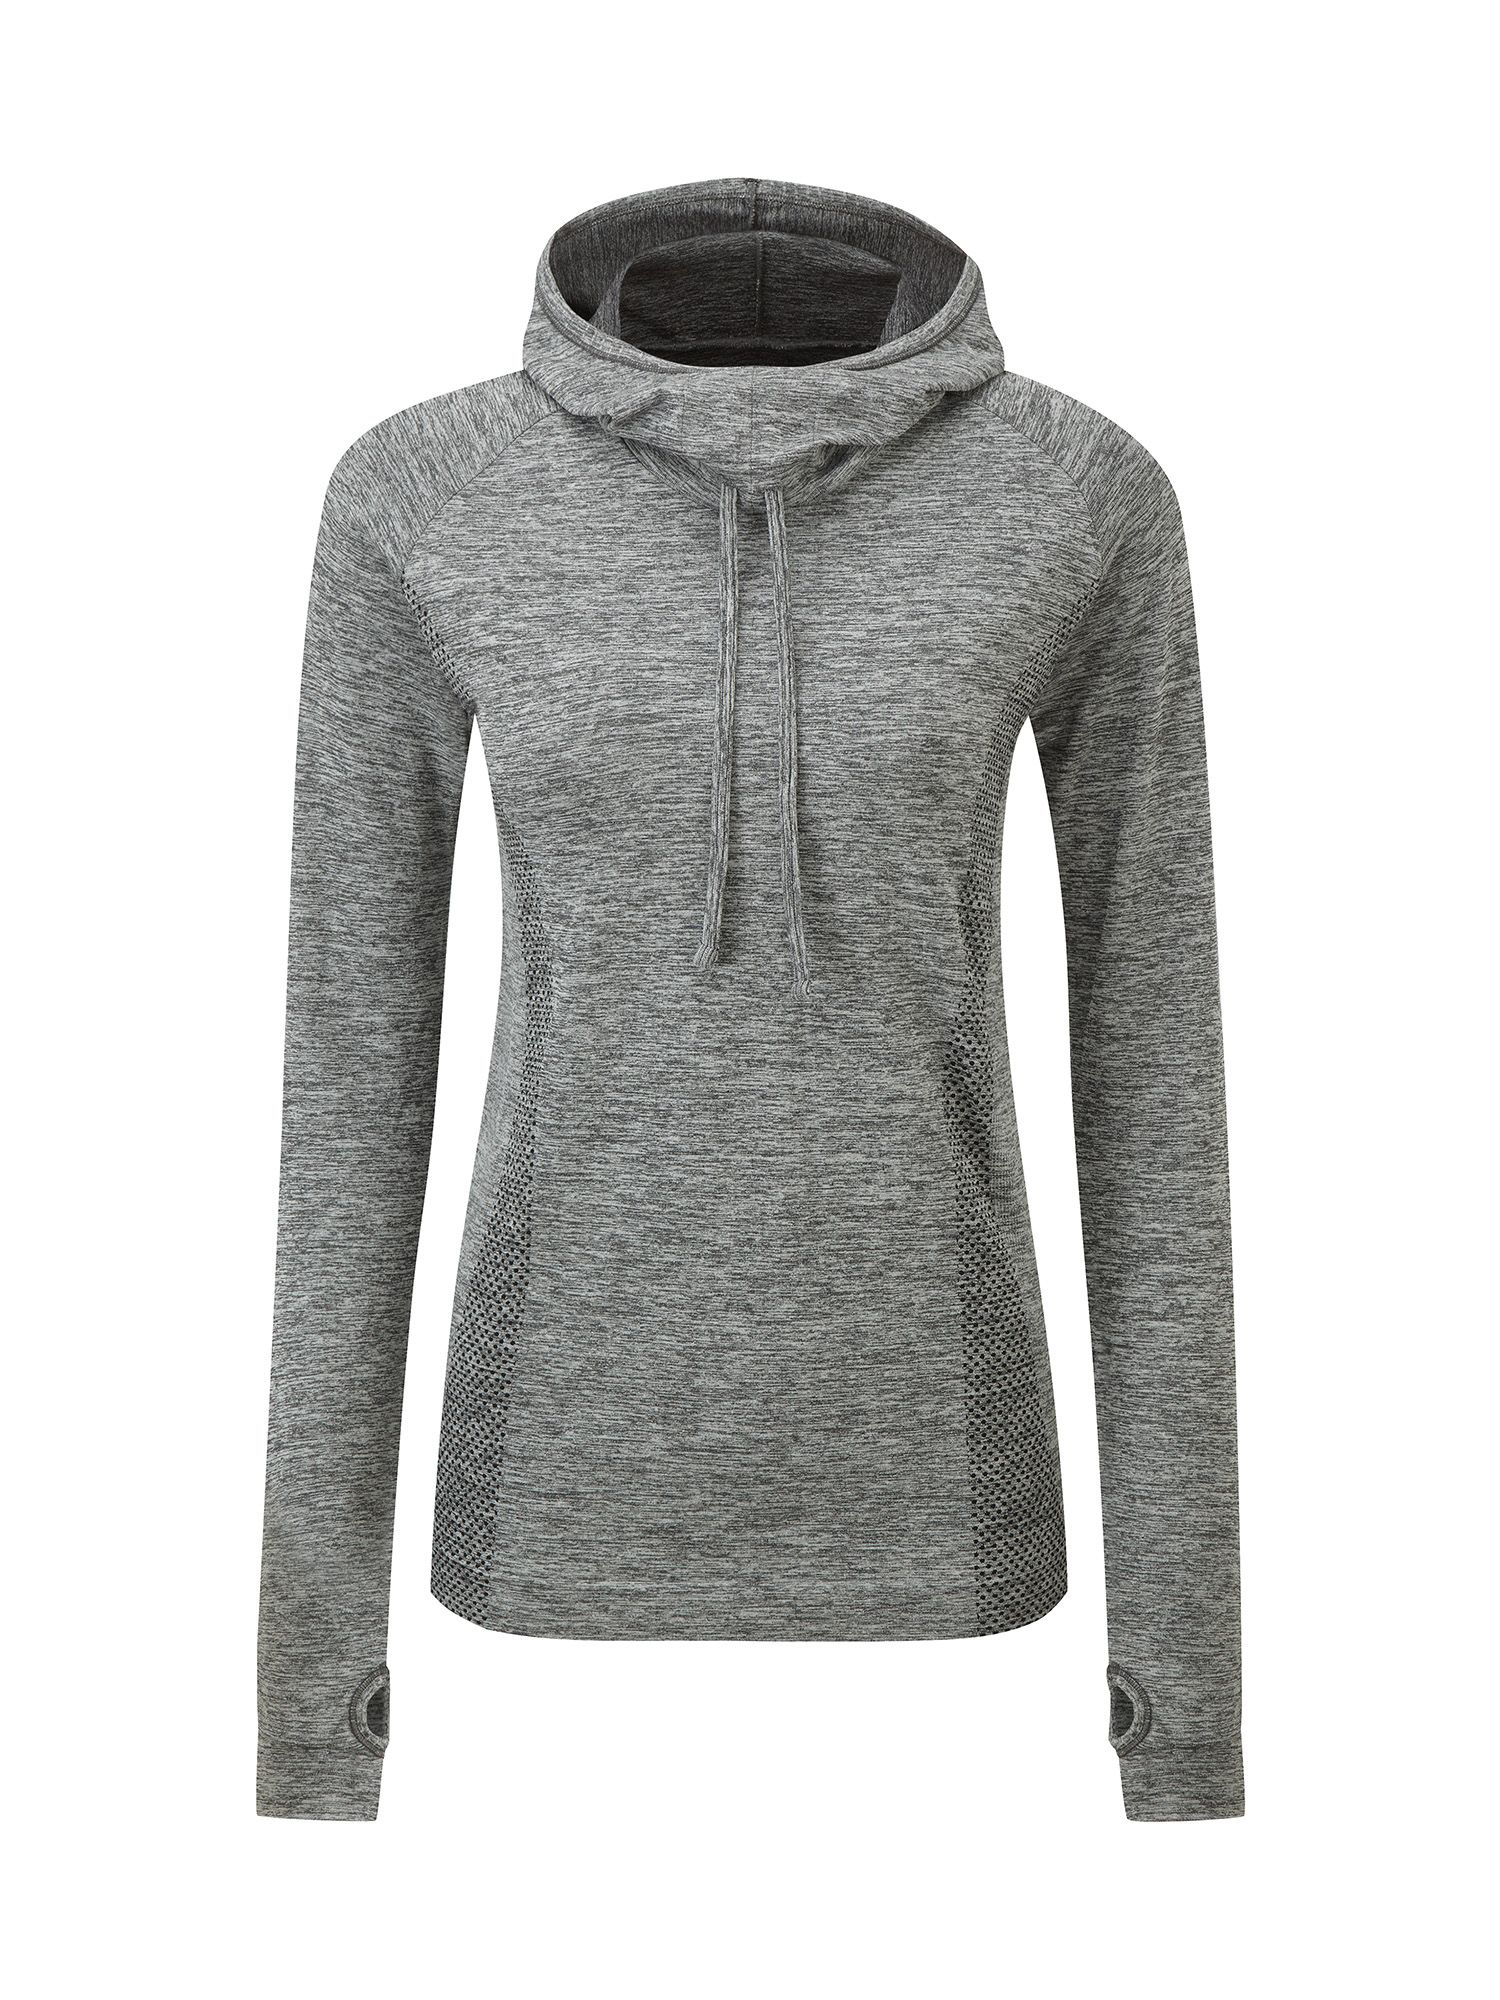 Tog 24 Vivace Womens TCZ Stretch Seamless Hoodie, Grey